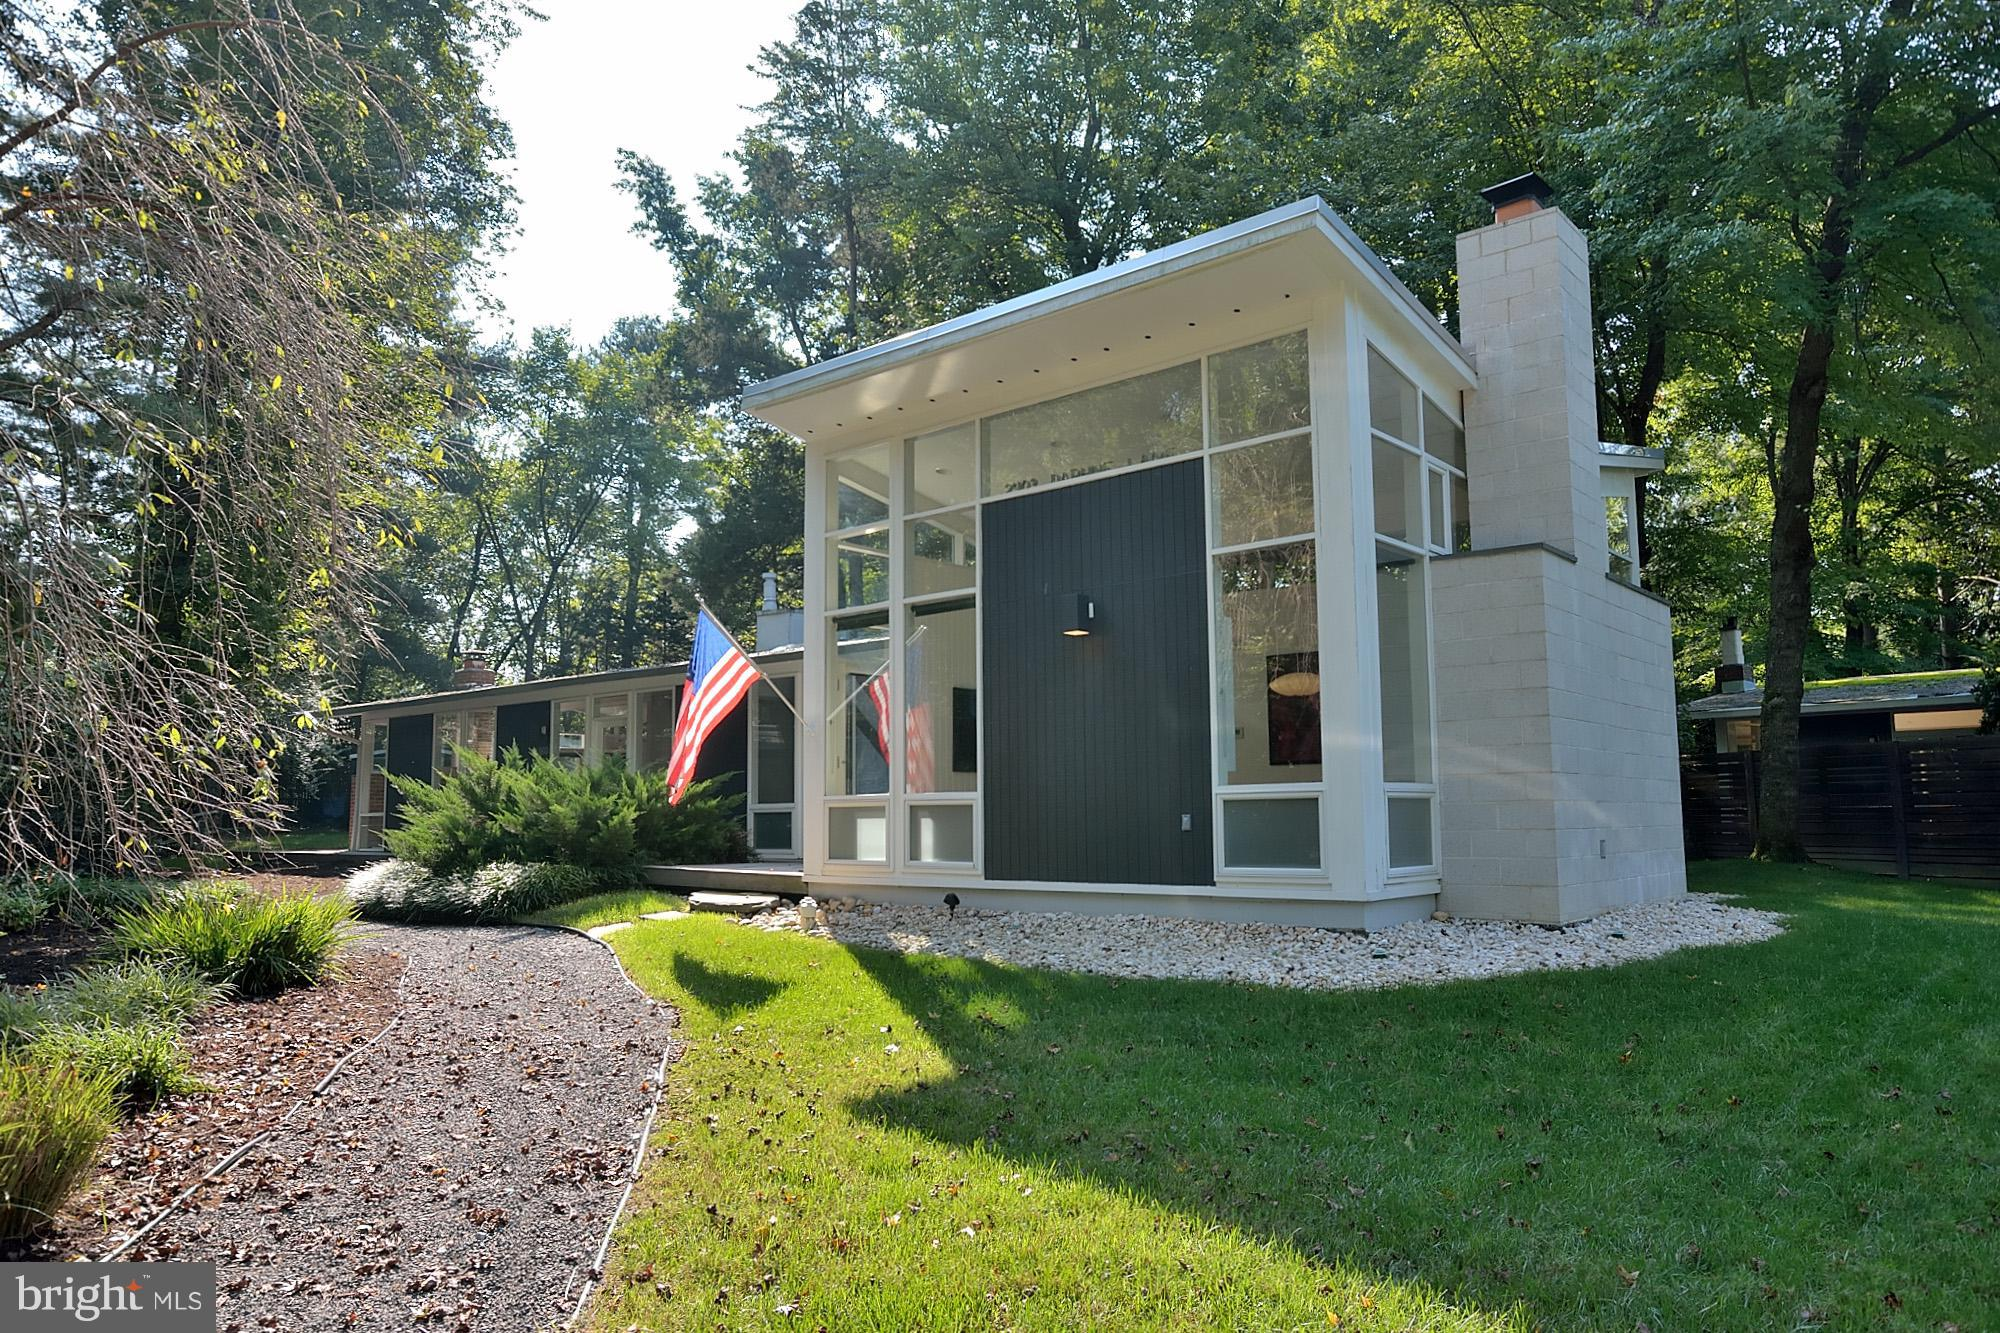 Stunning Mid-Century Modern home w/architect-designed two-story vaulted addition. Gorgeous wood floors, dual-zone HVAC and water heaters, renovated kitchen, updated bathrooms, fireplaces in family and living rooms, double-pane windows.  Master Bedroom Suite w/walk-in closet and luxury bath w/soaking tub. Rare lower level family room w/laundry. Flat landscaped yard on cul-de-sac.